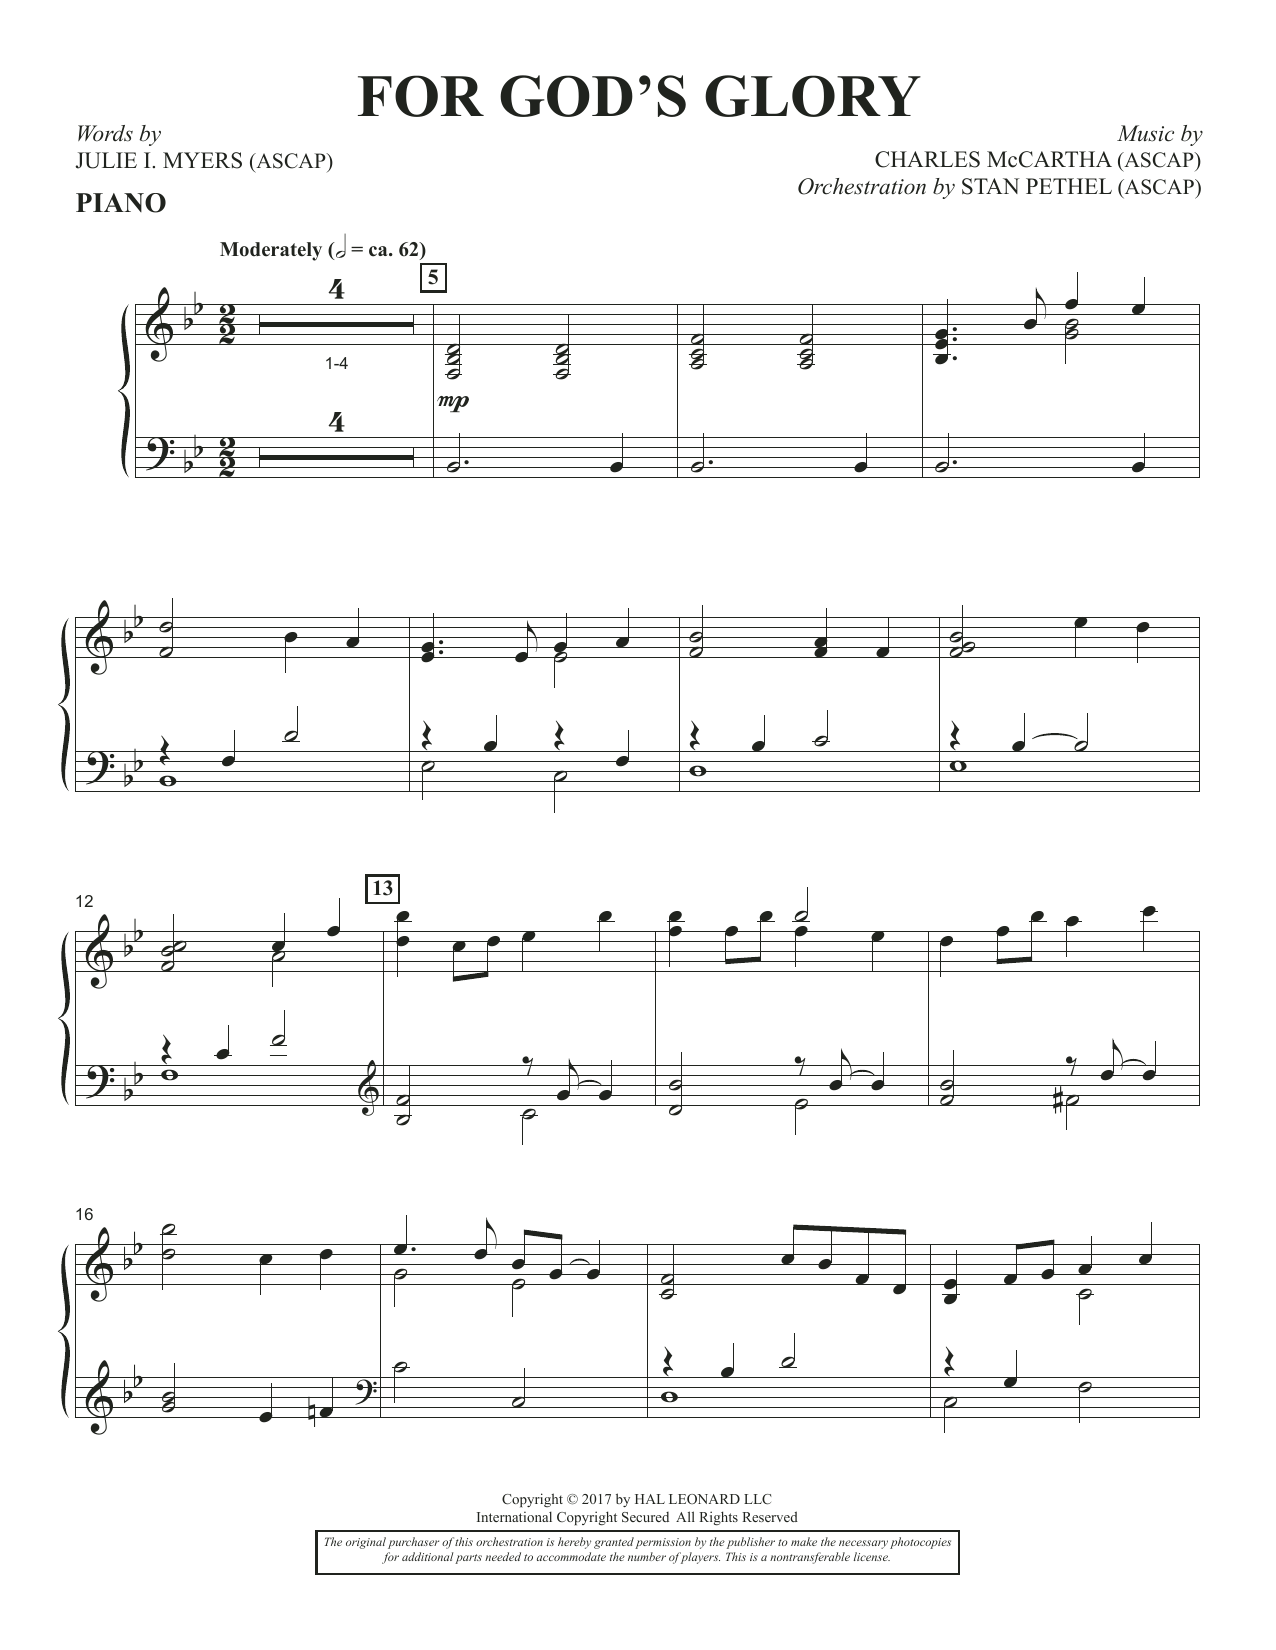 Charles McCartha For God's Glory - Piano sheet music notes and chords. Download Printable PDF.